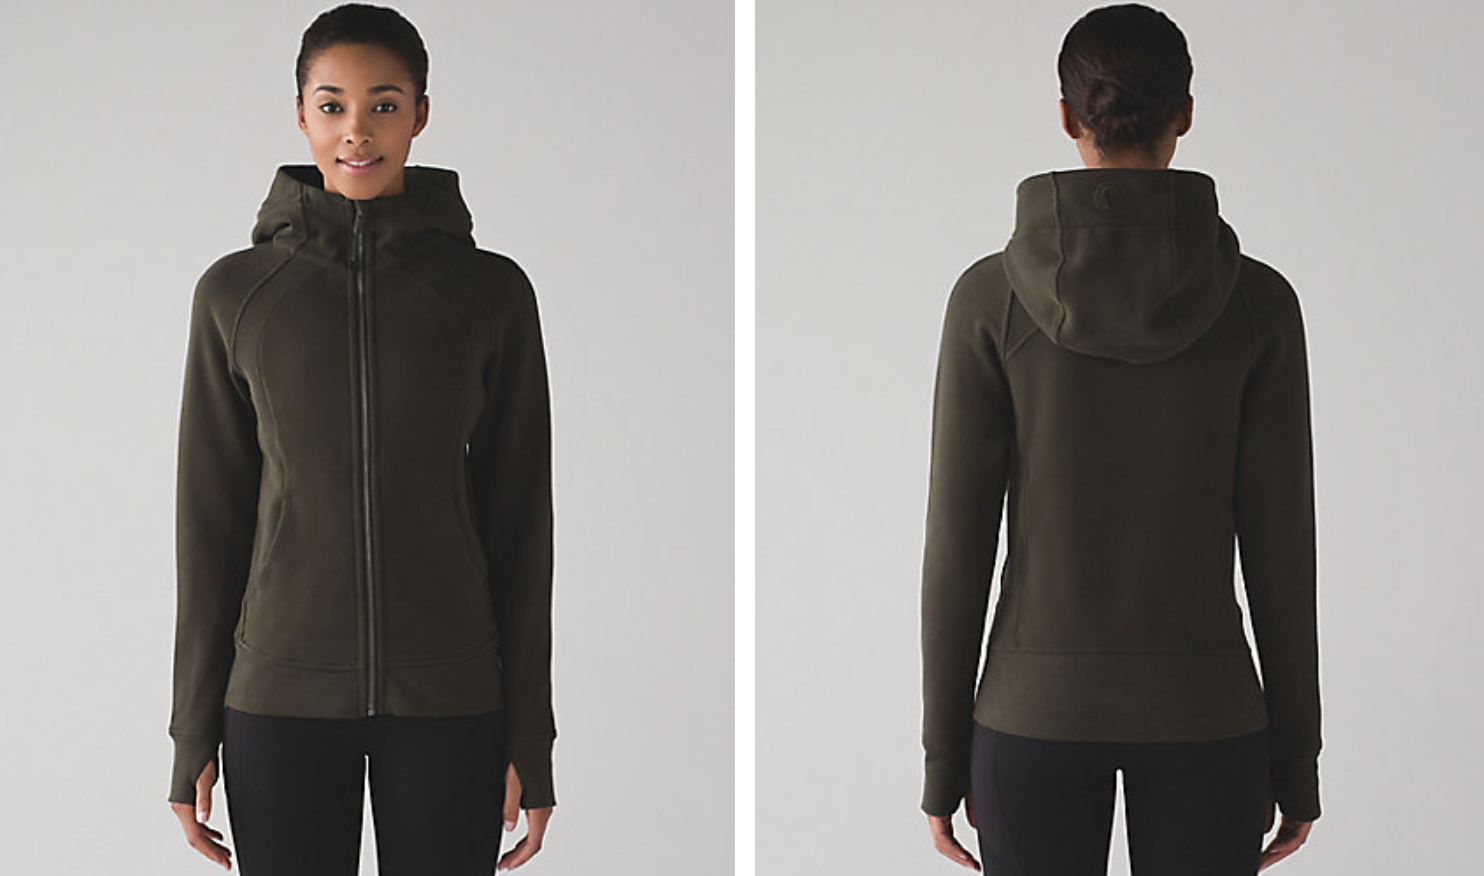 https://api.shopstyle.com/action/apiVisitRetailer?url=https%3A%2F%2Fshop.lululemon.com%2Fp%2Fjackets-and-hoodies-hoodies%2FScuba-Hoodie-IV%2F_%2Fprod8351383%3Frcnt%3D8%26N%3D1z13ziiZ7z5%26cnt%3D71%26color%3DLW4ADBS_026083&site=www.shopstyle.ca&pid=uid6784-25288972-7